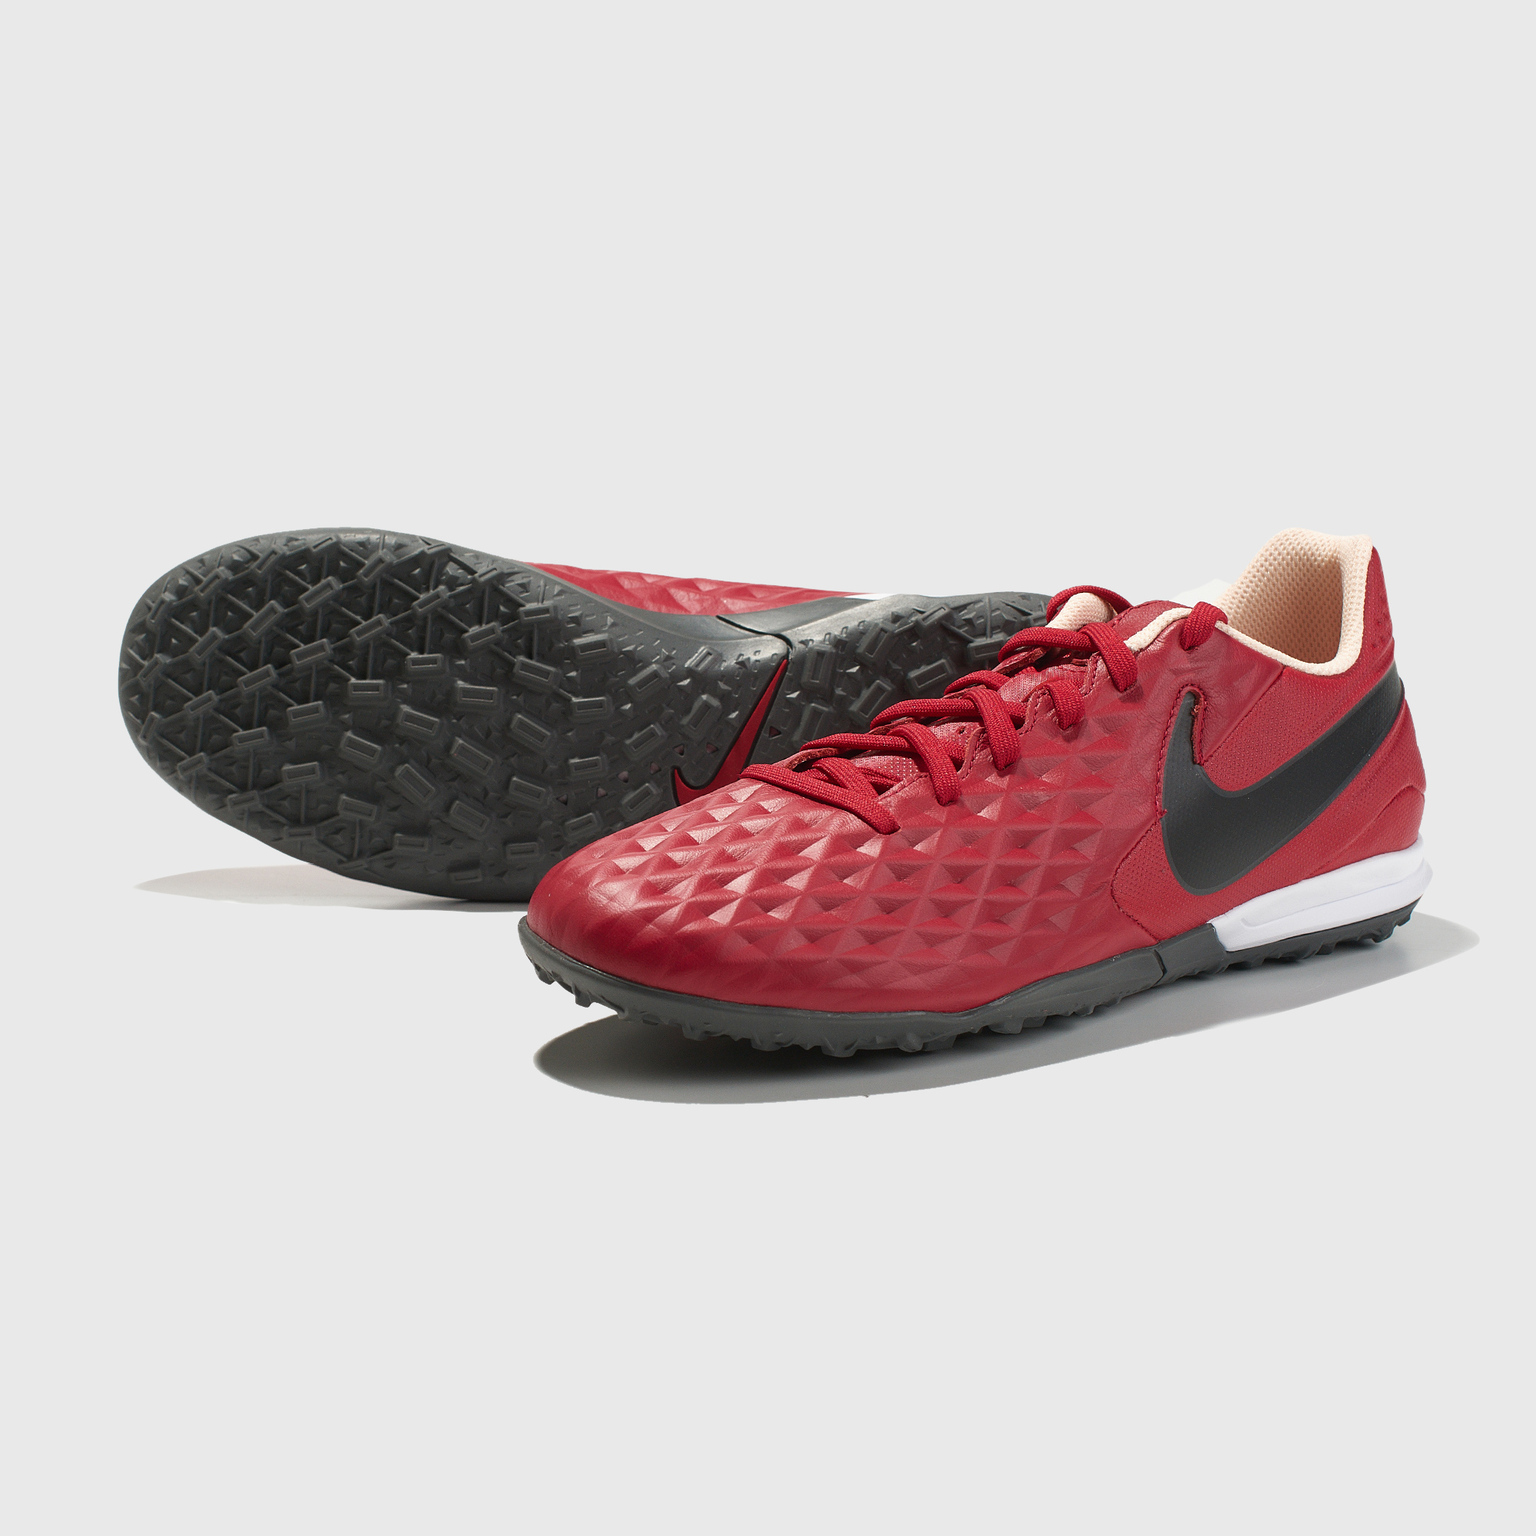 Шиповки Nike Legend 8 Academy TF AT6100-608 шиповки детские nike legend 8 academy tf at5736 606